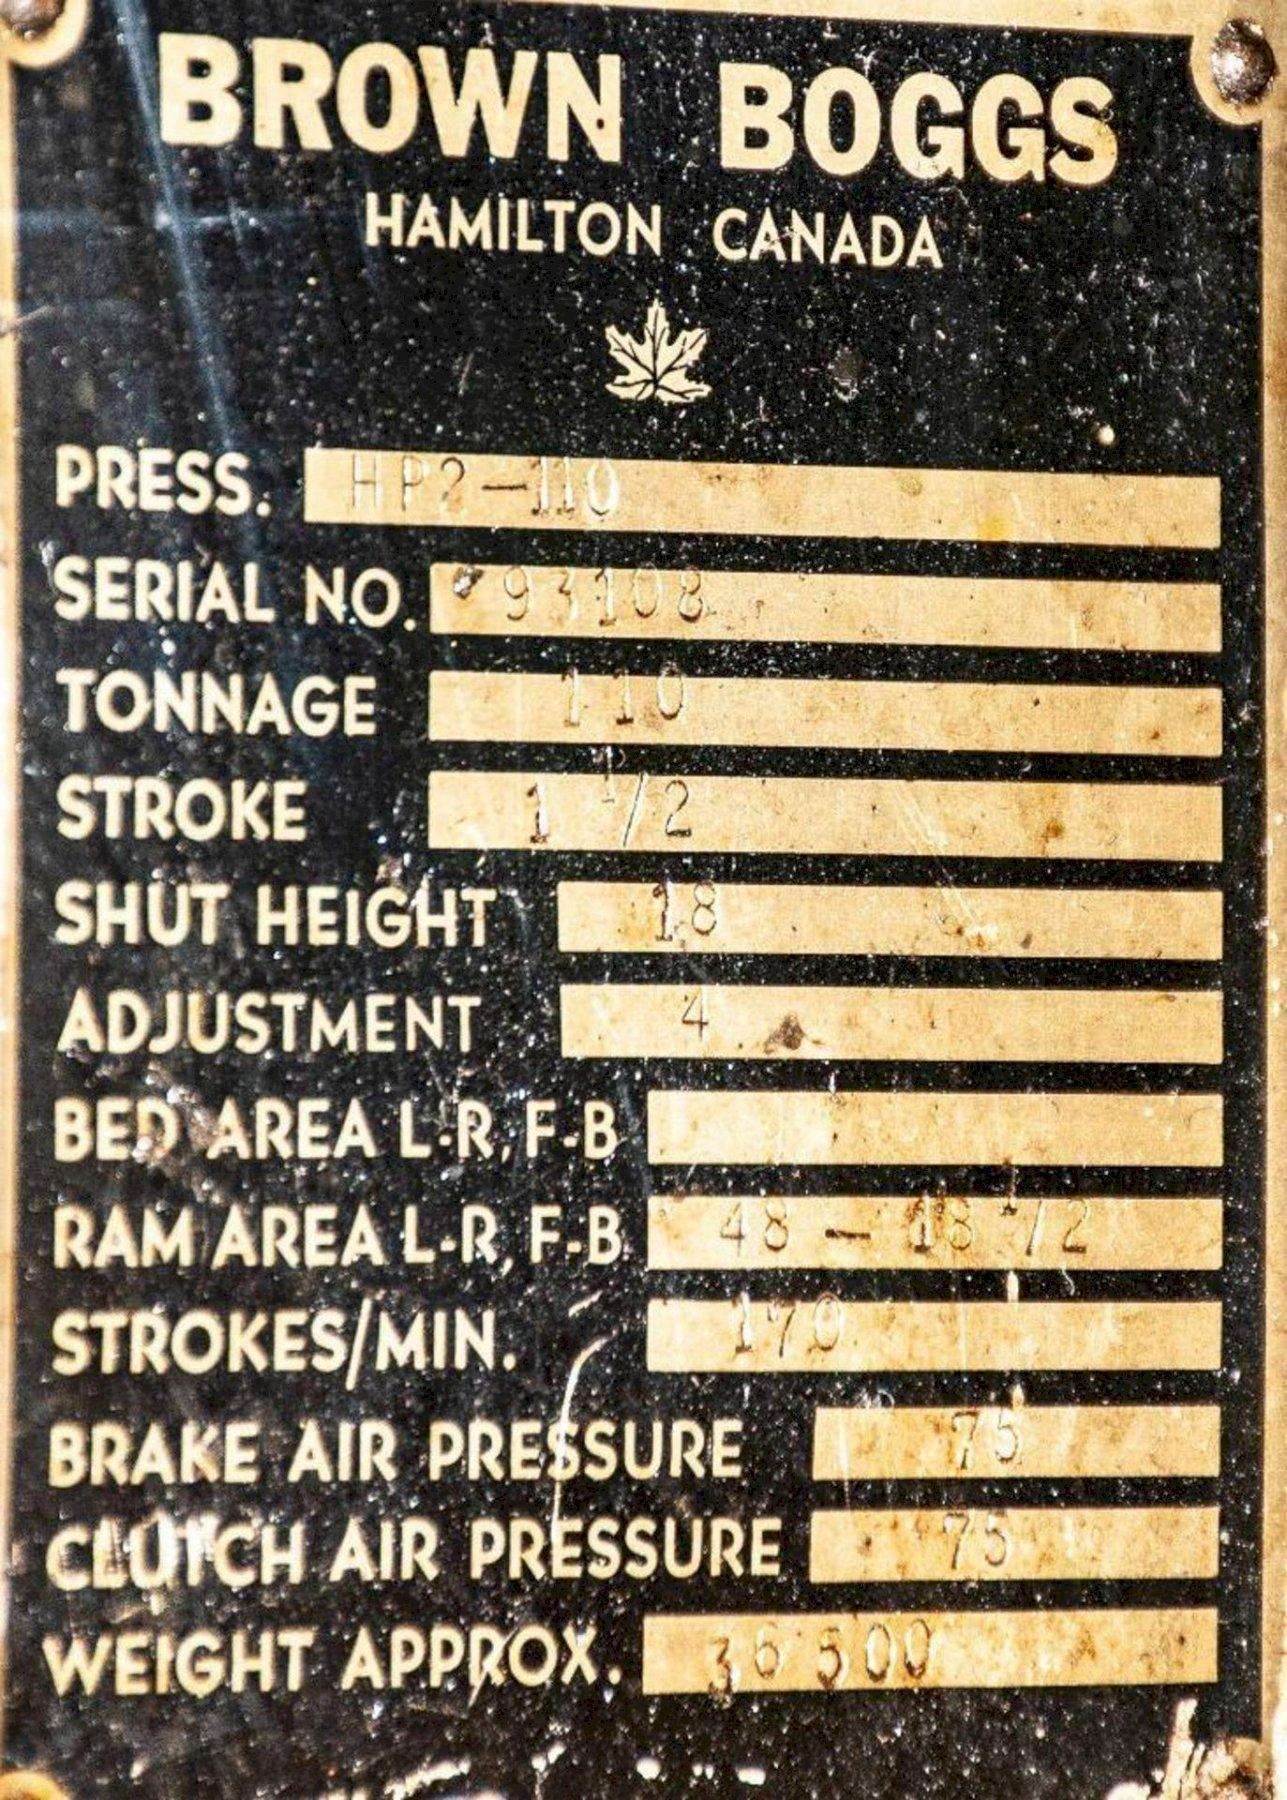 110 TON BROWN & BOGGS MODEL HP2-110 SRAIGHT SIDE PRESS: STOCK #0951421